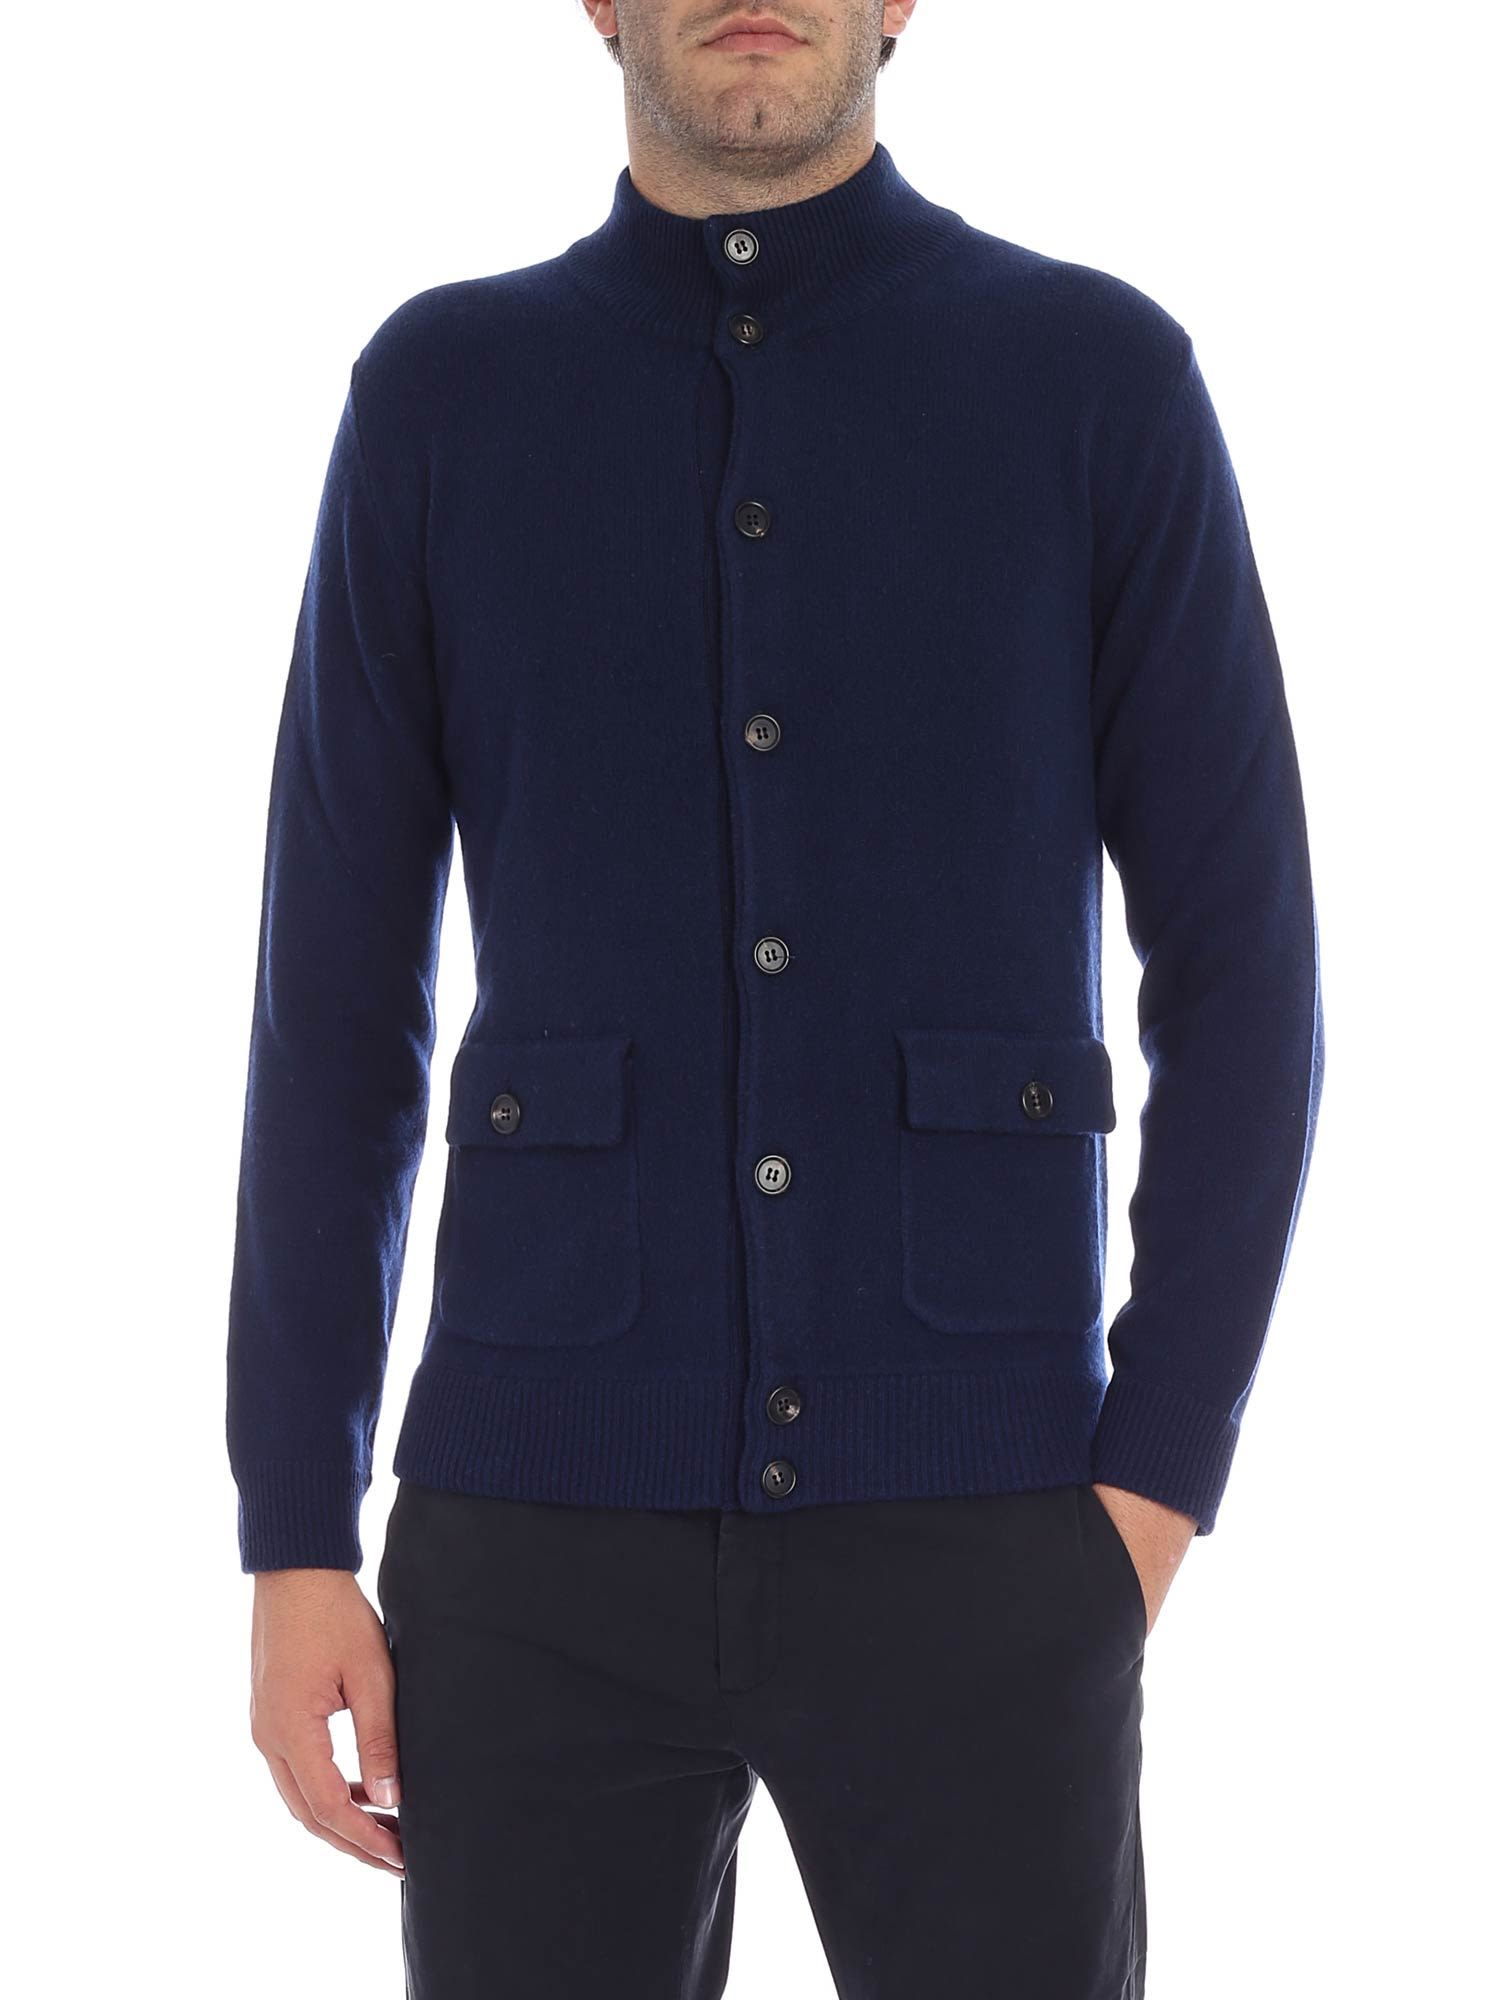 LUIGI BORRELLI Front Pocket Detail Cardigan in Blue